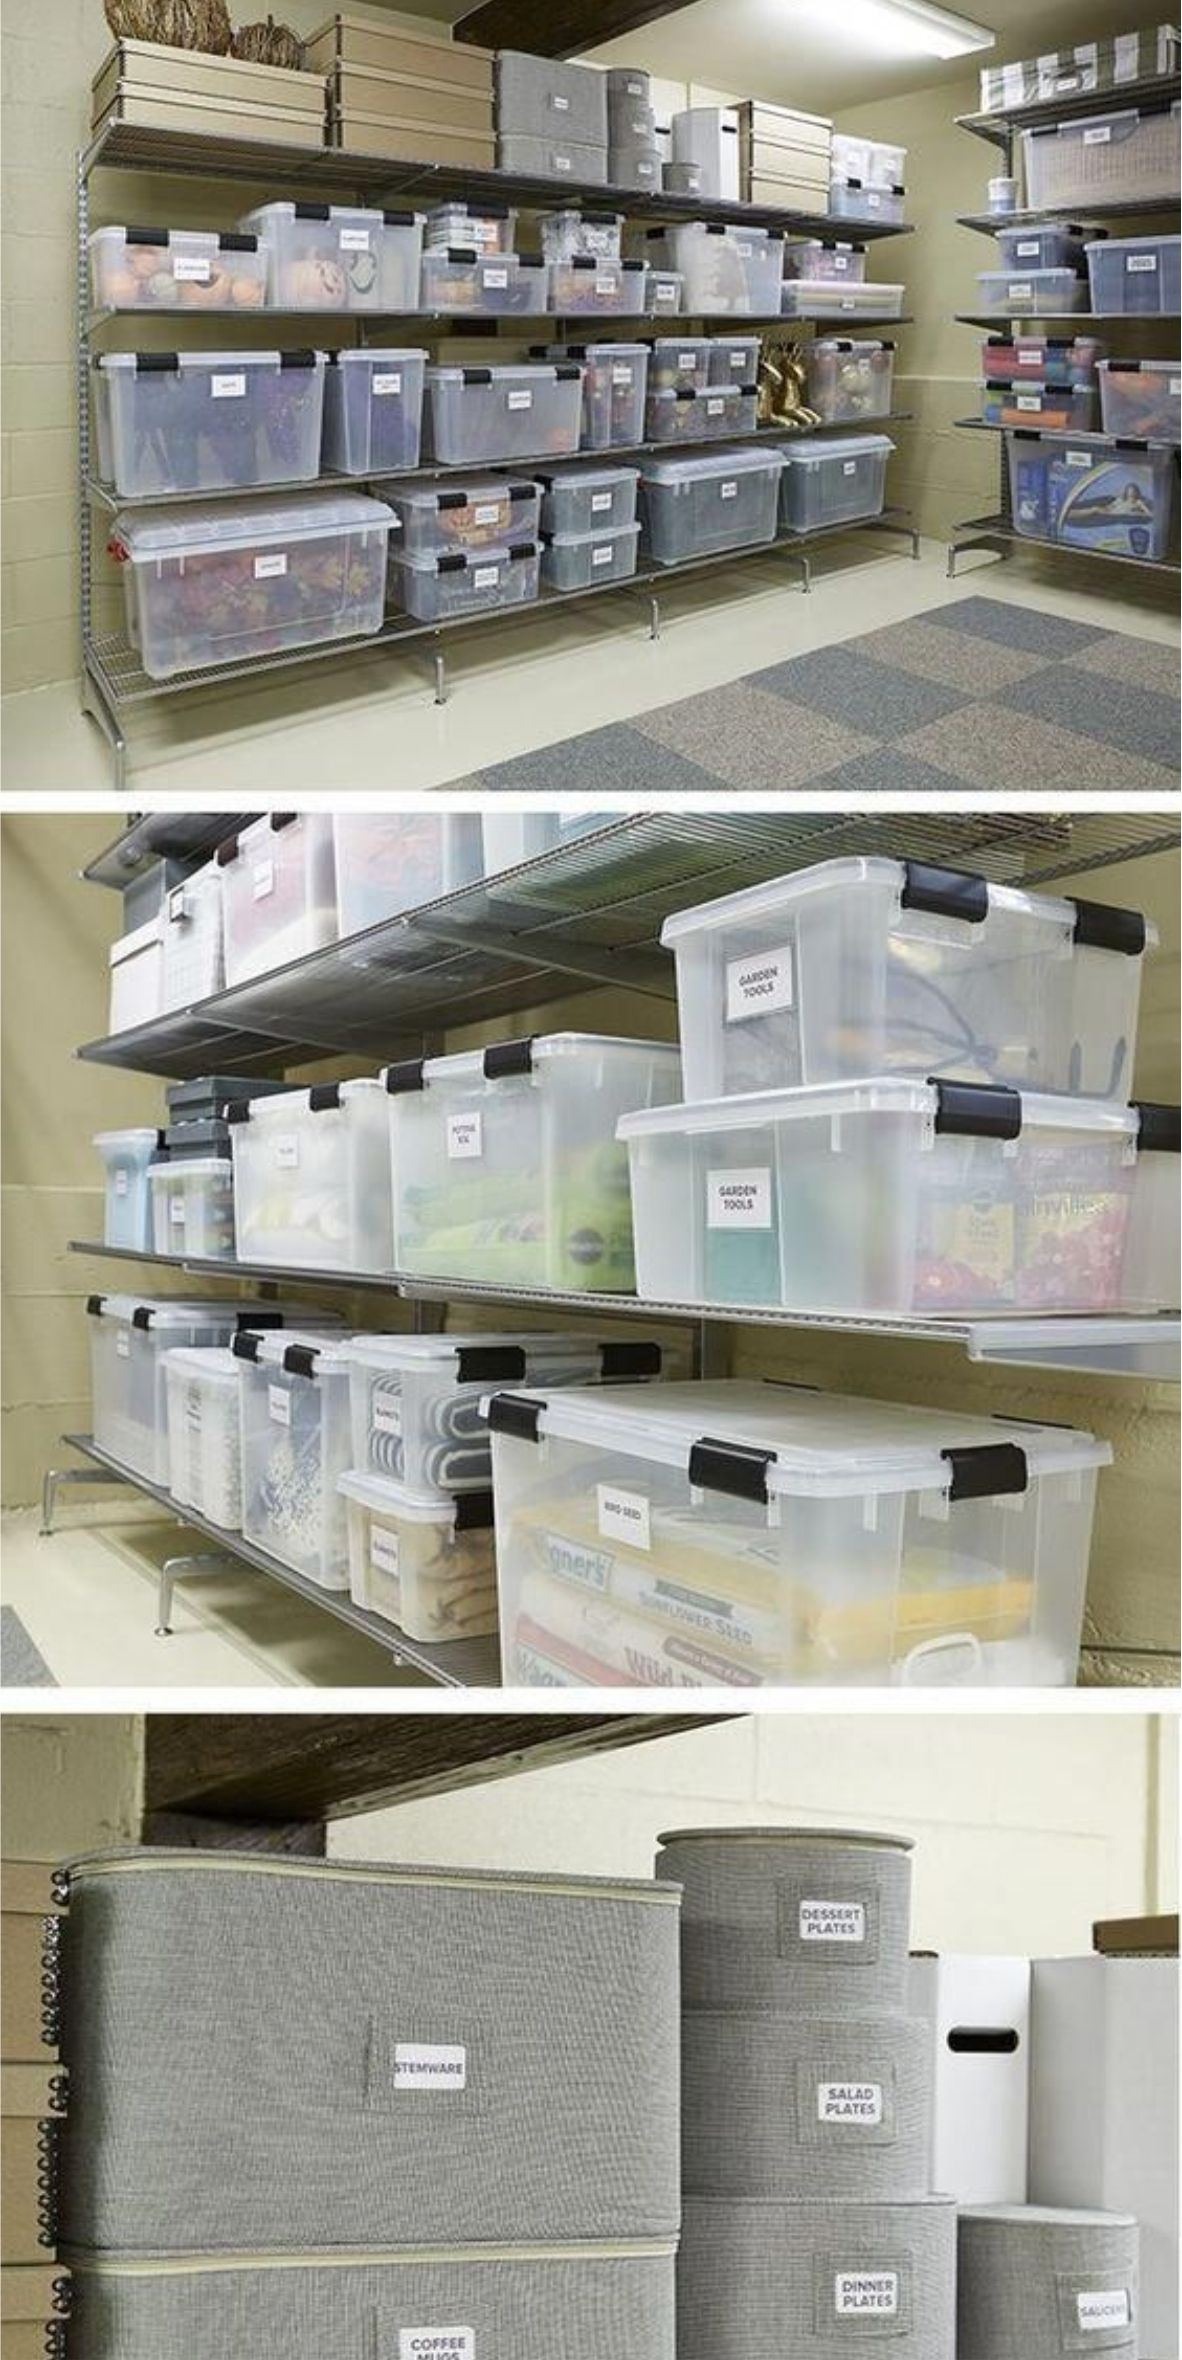 31 Attic Storage Containers Boxes Ideas Basement Storage Attic Storage Organization Attic Storage